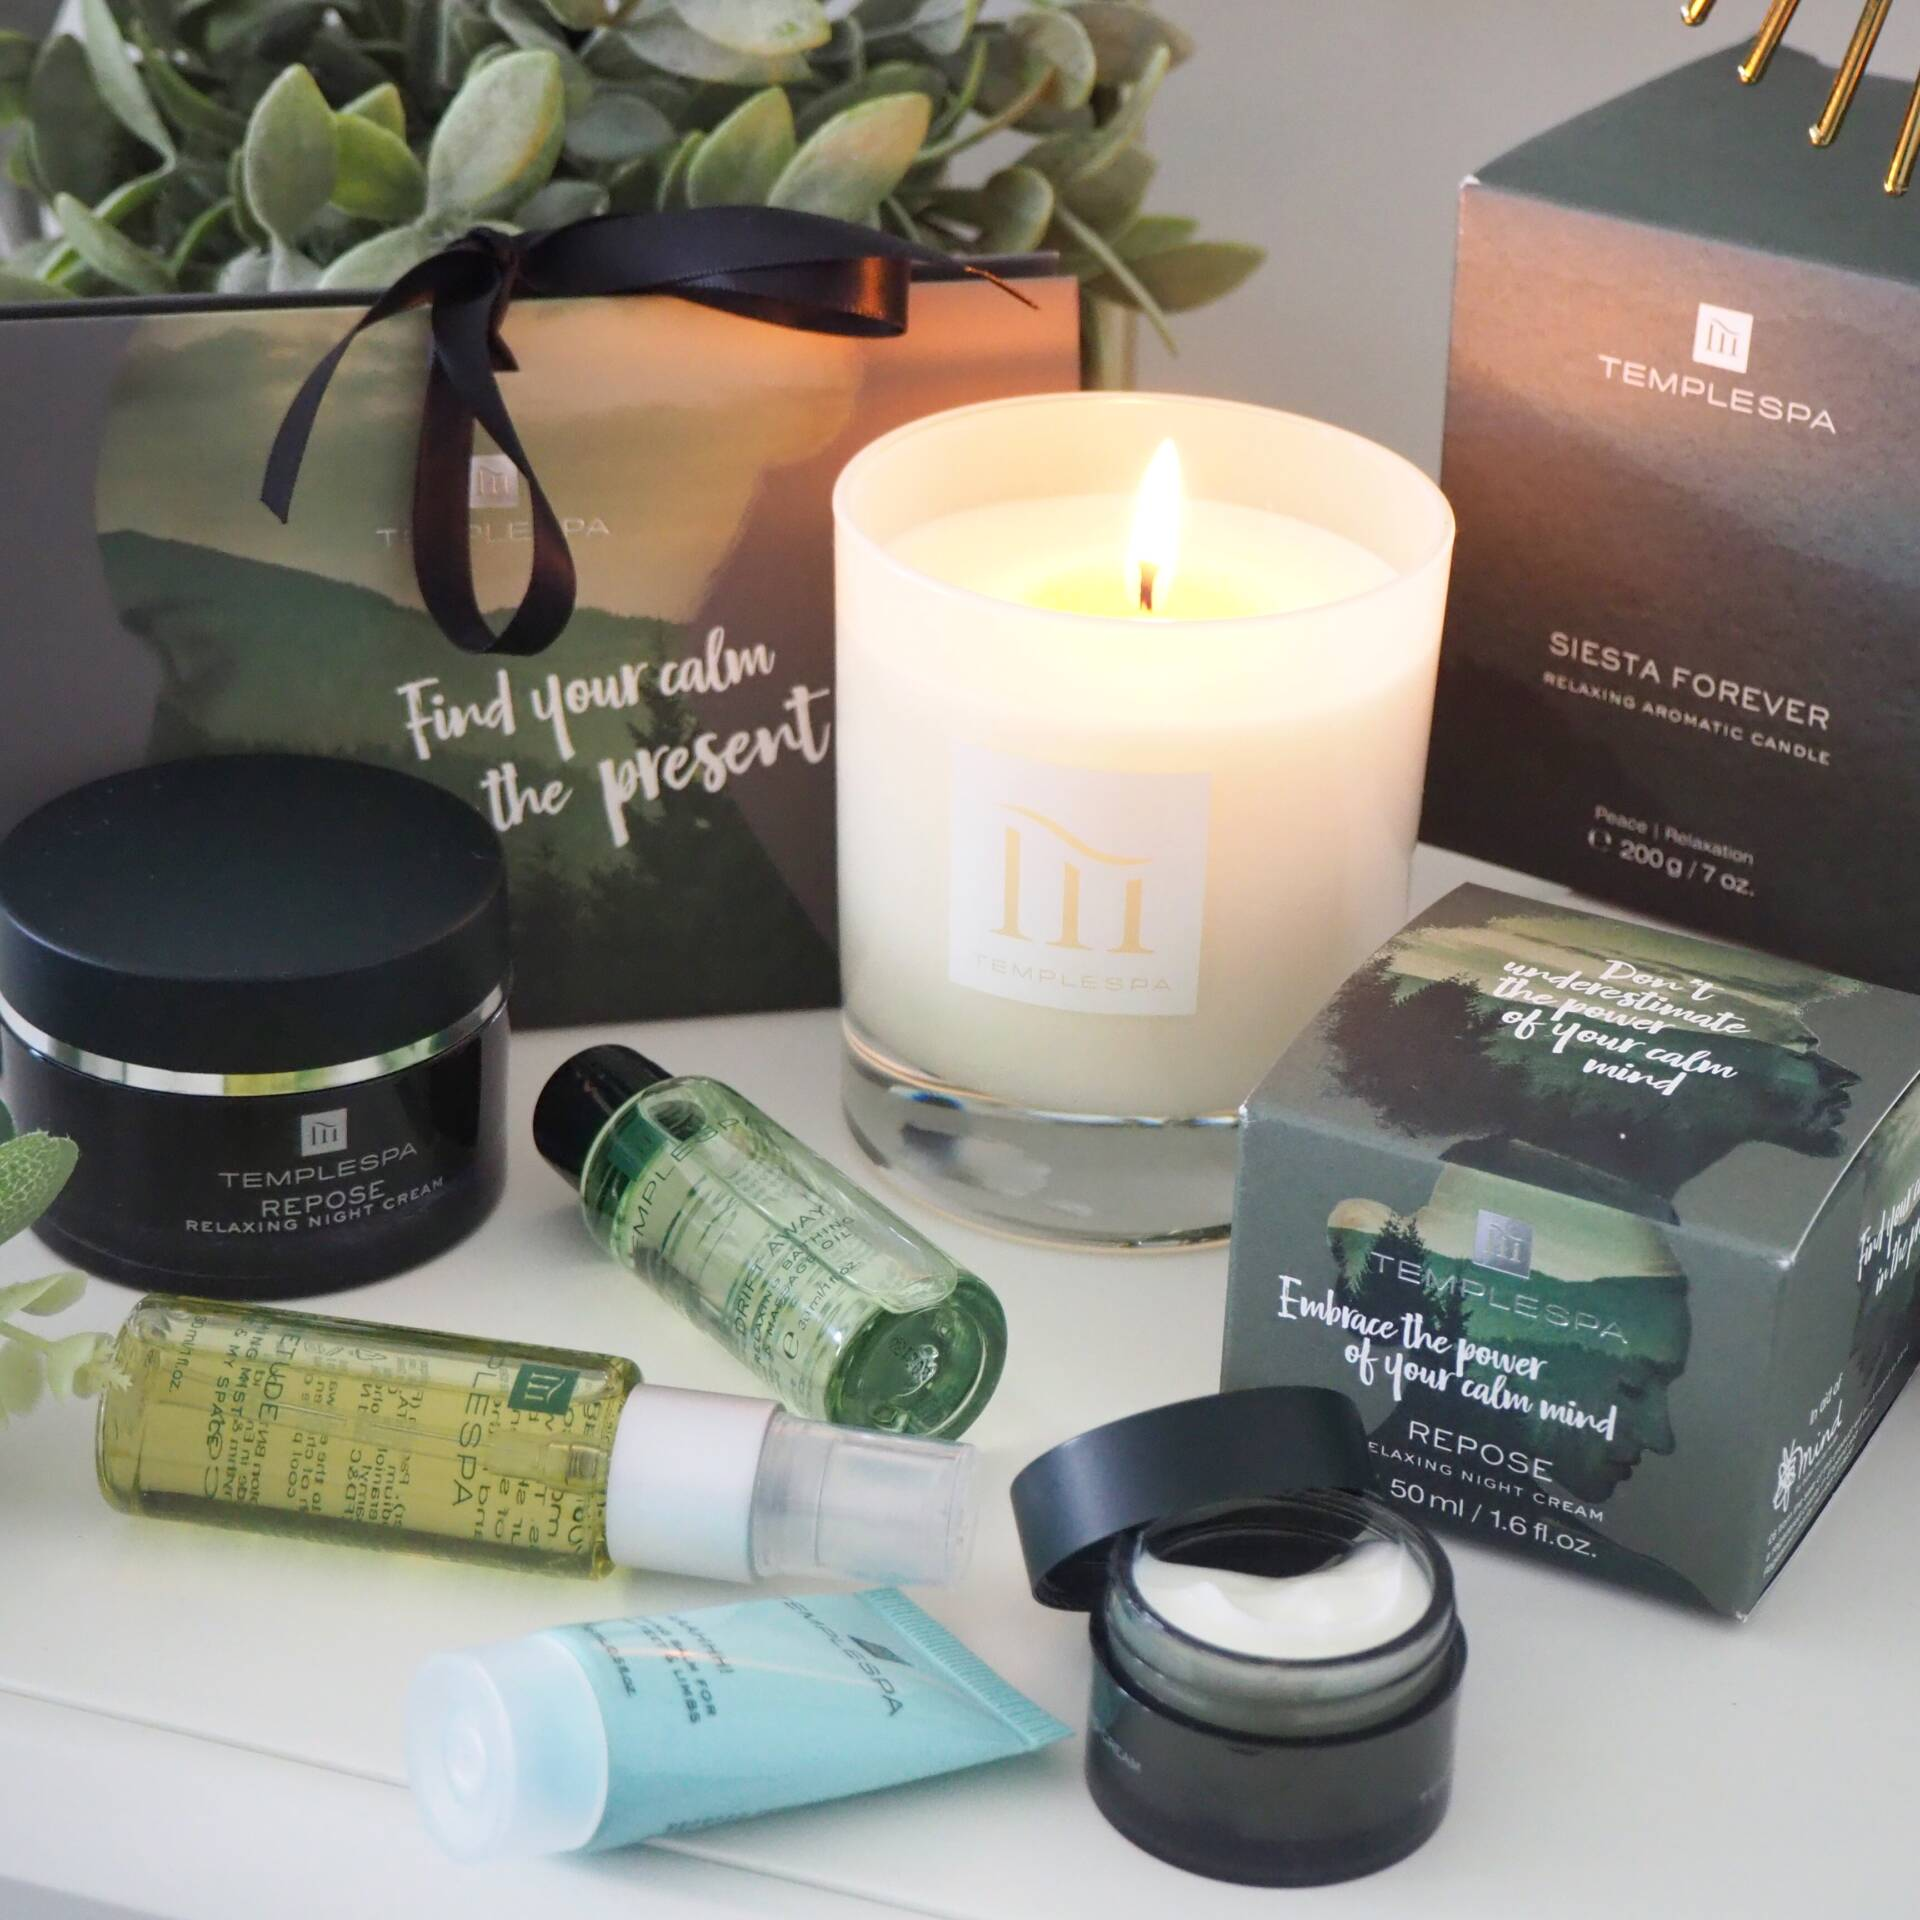 templespa-review